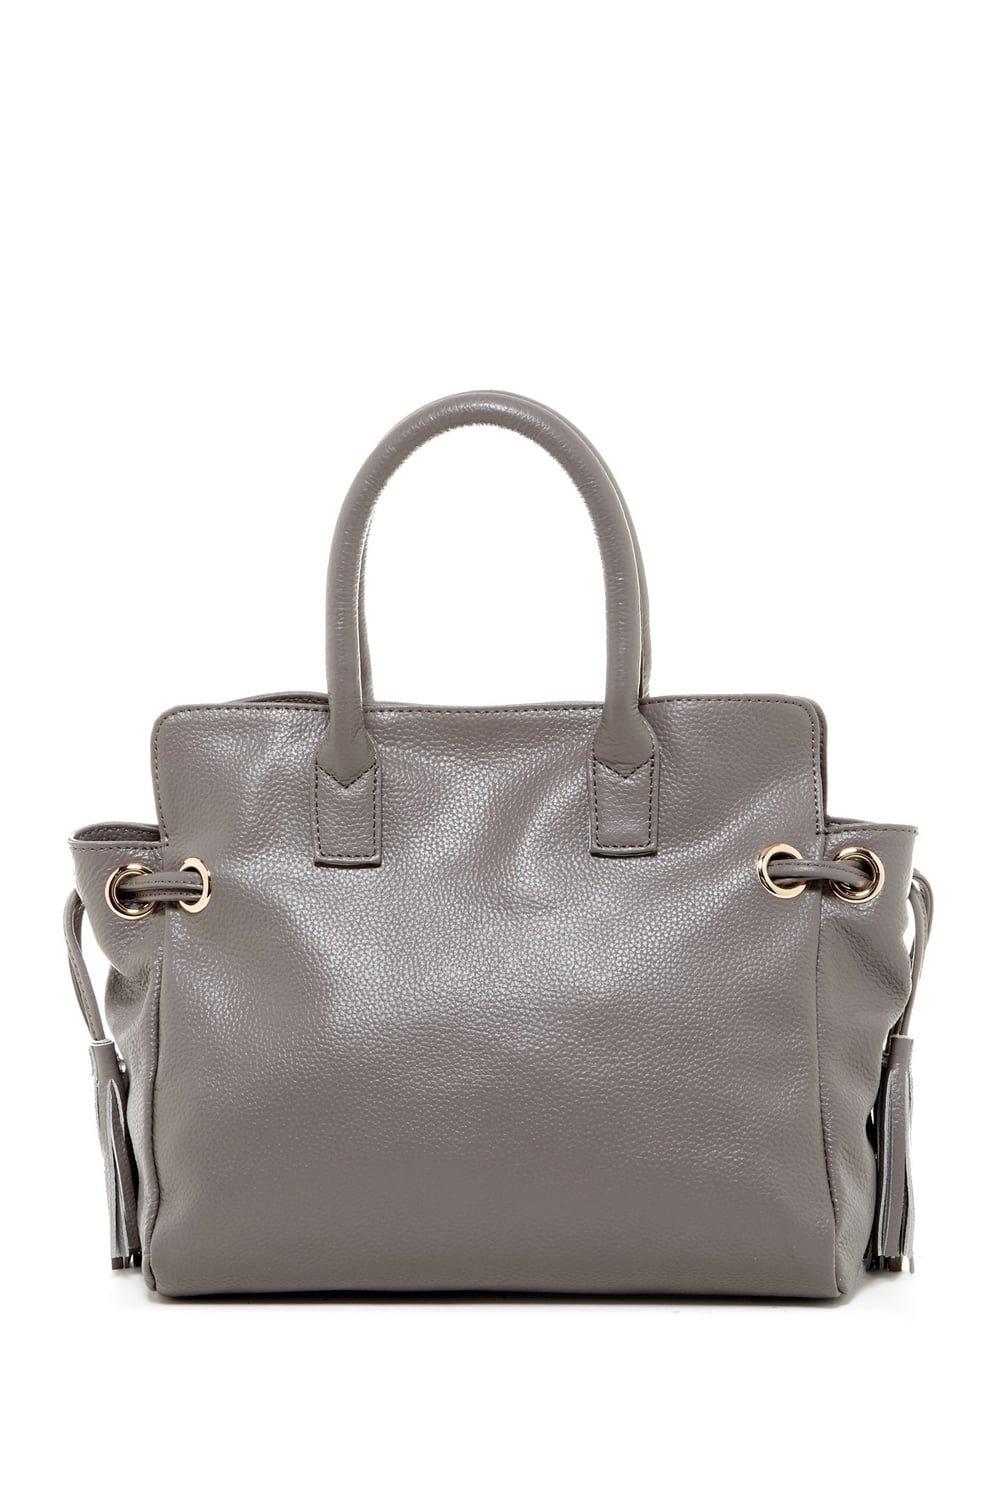 Onna By Onna Ehrlich Iris Leather Tote. Nordstrom Rack. Was: $225 Now: $99.